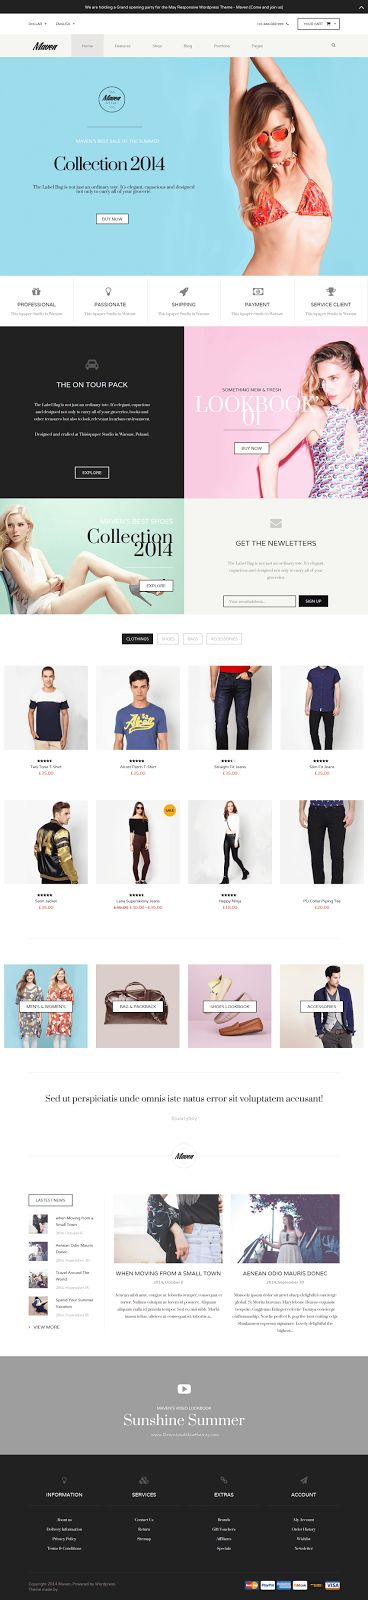 Maven Amazing New WordPress WooCommerce Theme